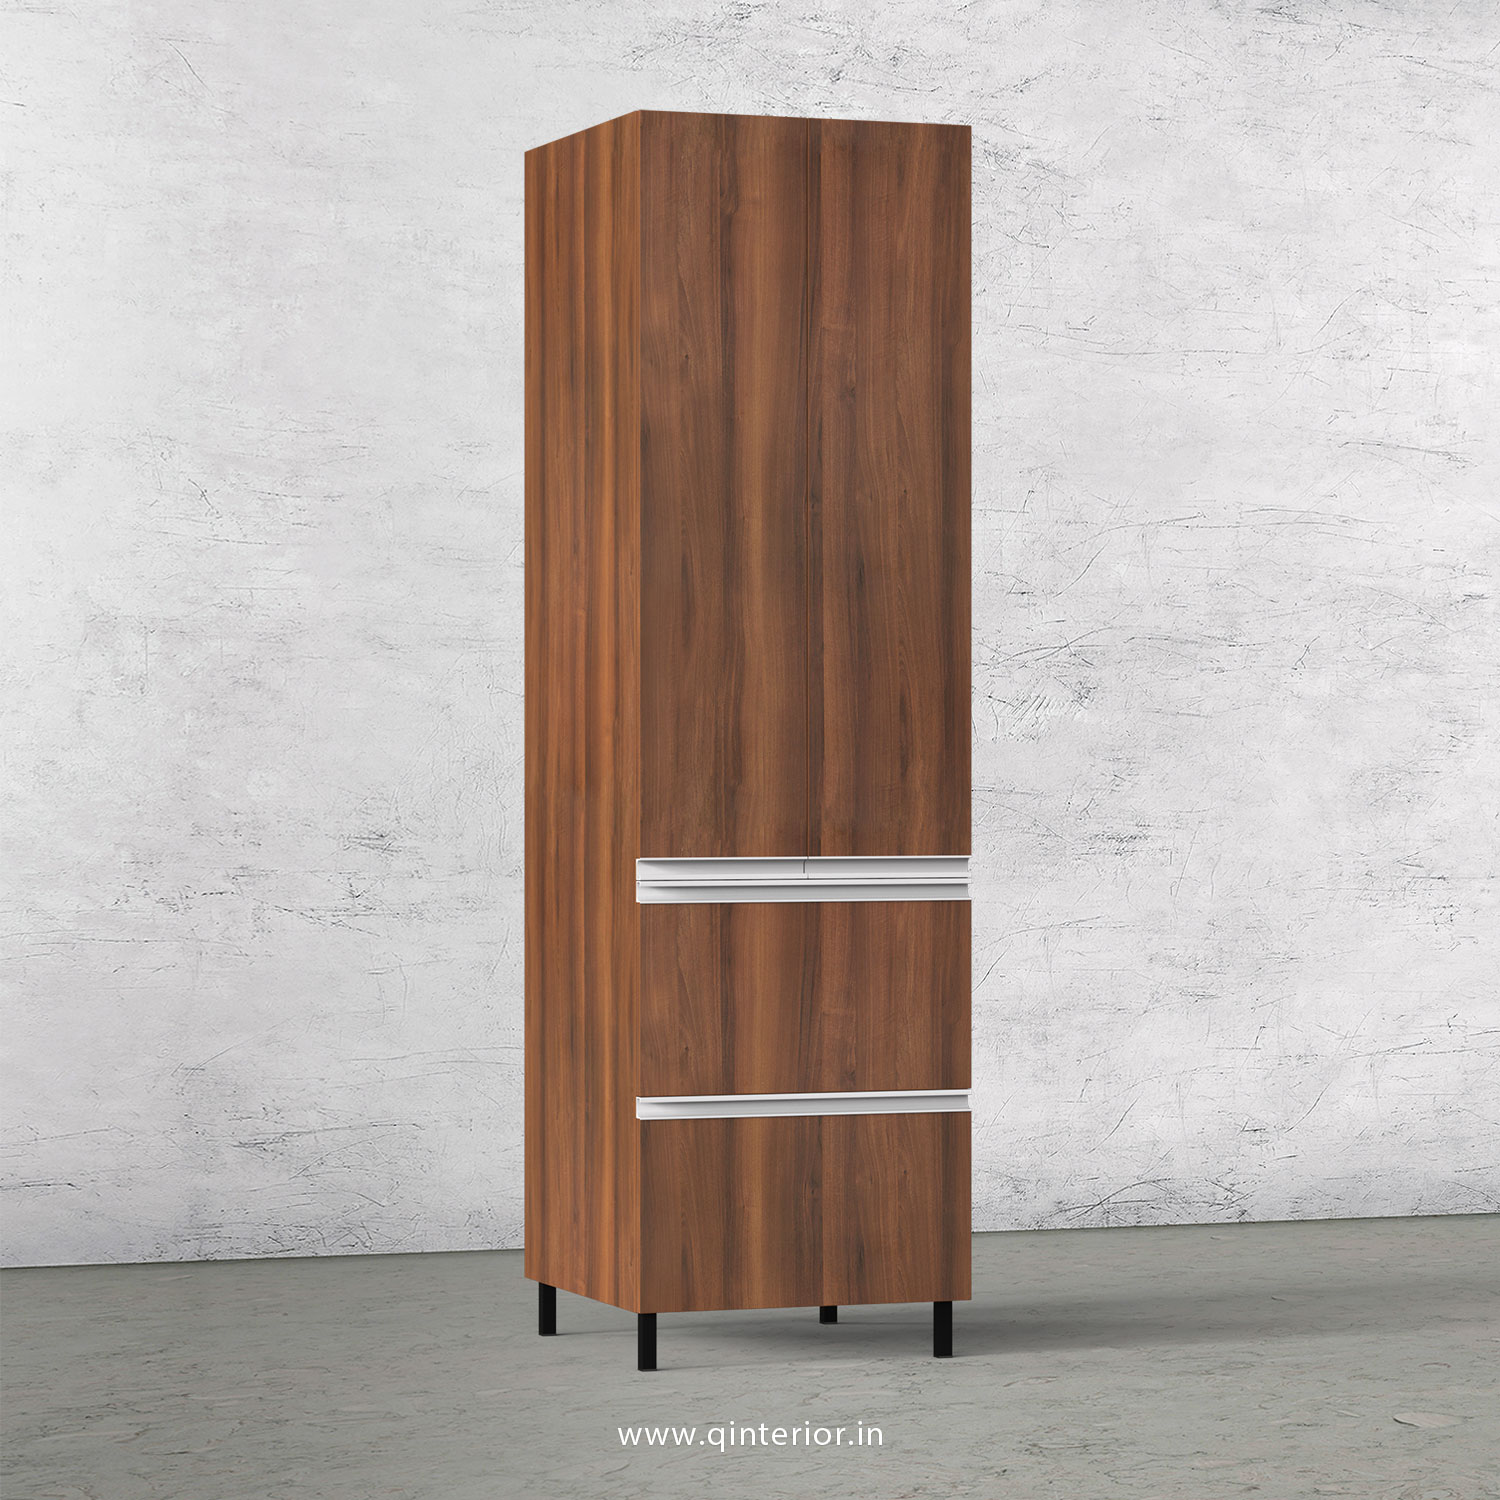 Stable Kitchen Tall Unit in Teak Finish - KTB802 C3